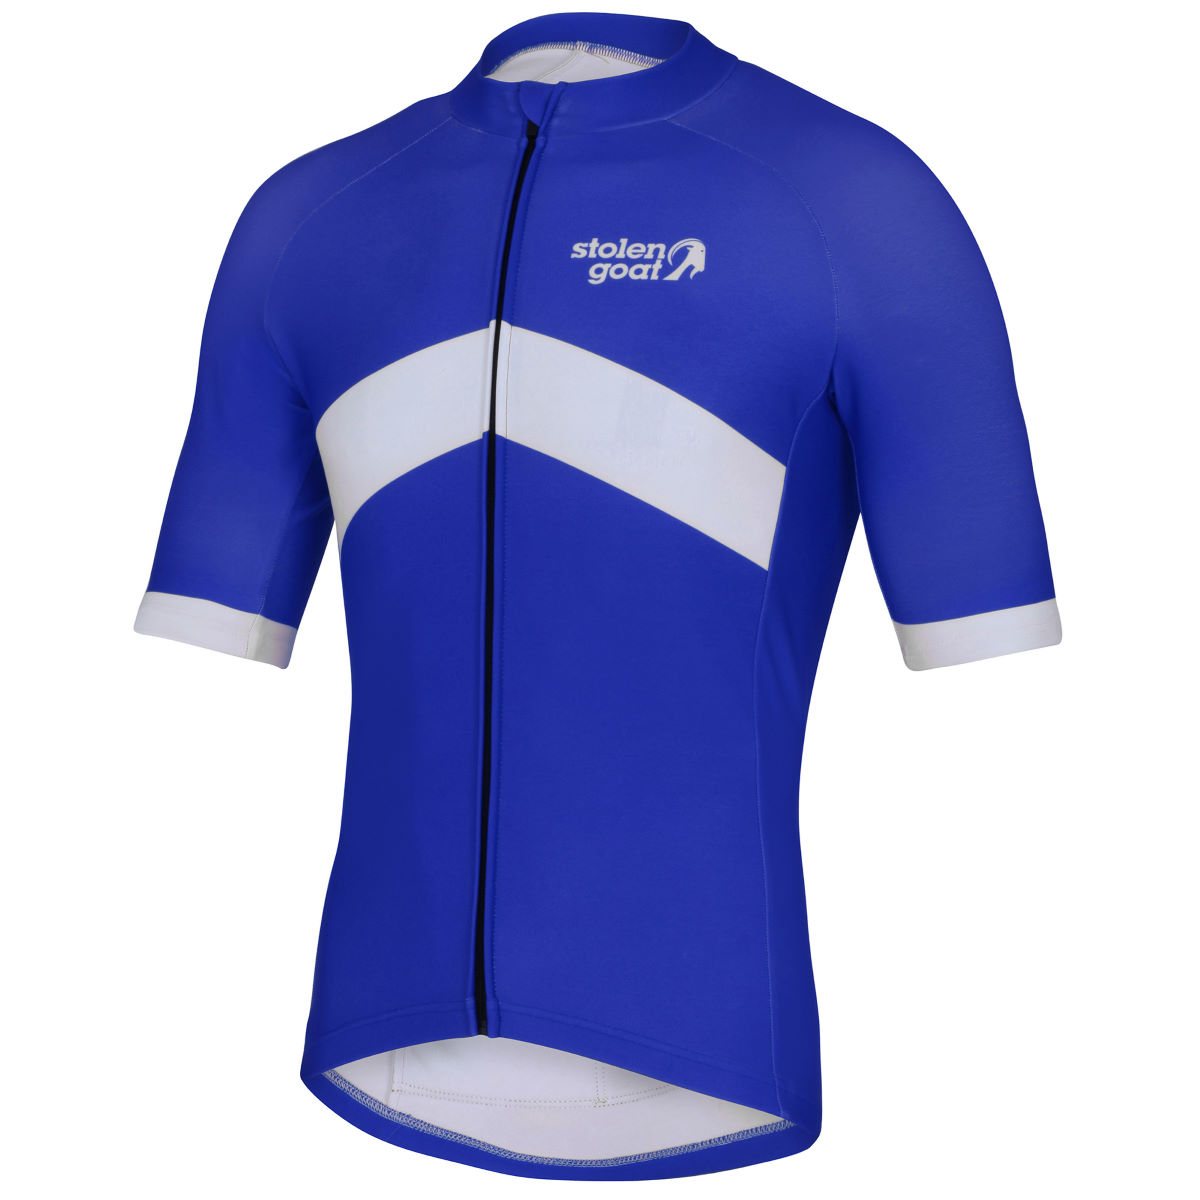 Image of Maillot Stolen Goat Orkaan Everyday (manches courtes) - S Bleu